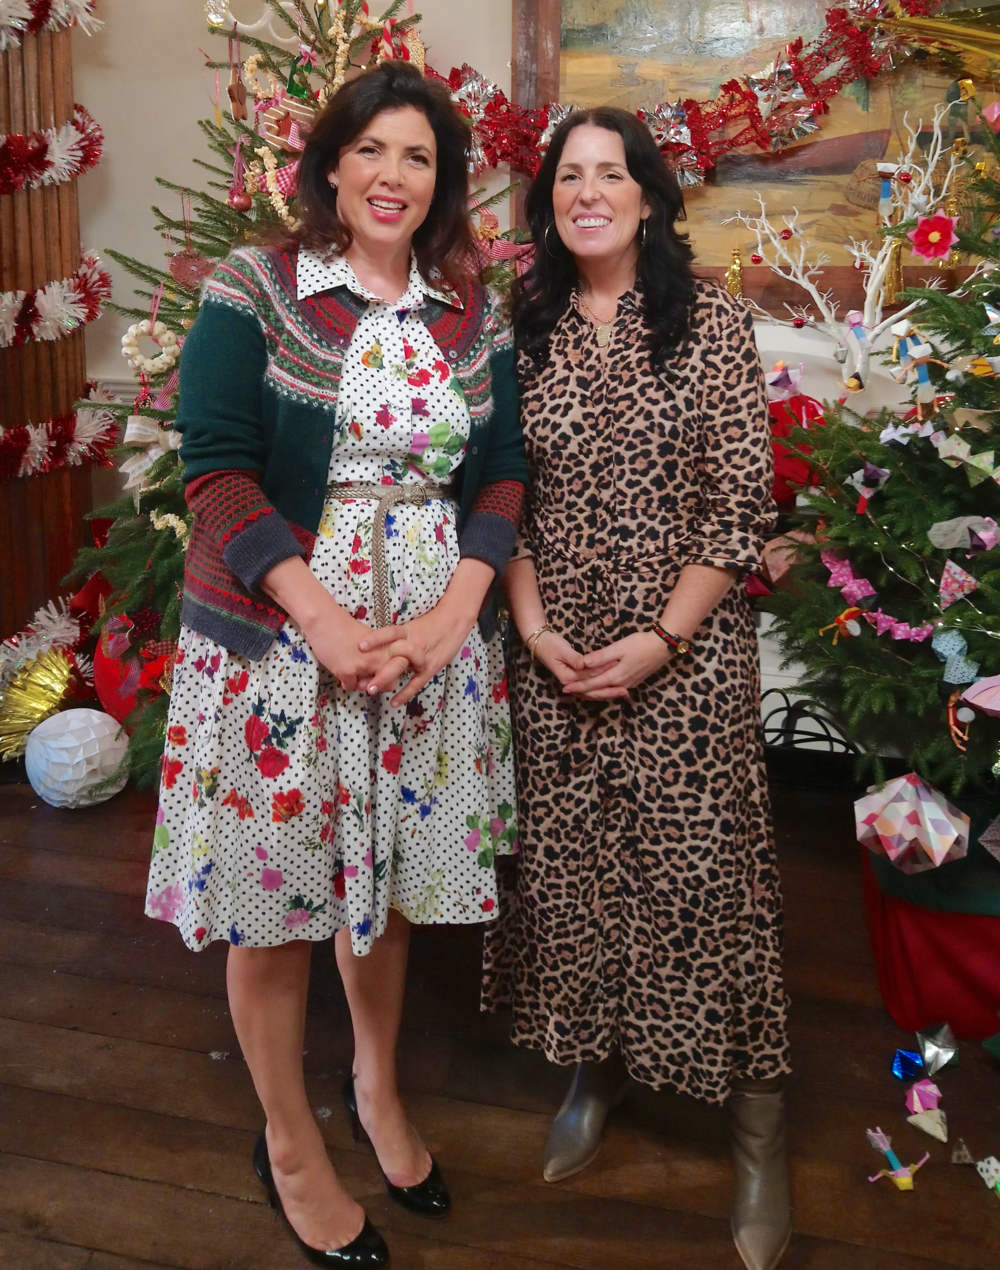 Kirstie's Handmade Christmas 2018 - Channel 4 December 5th 2018 - Christmas Judge